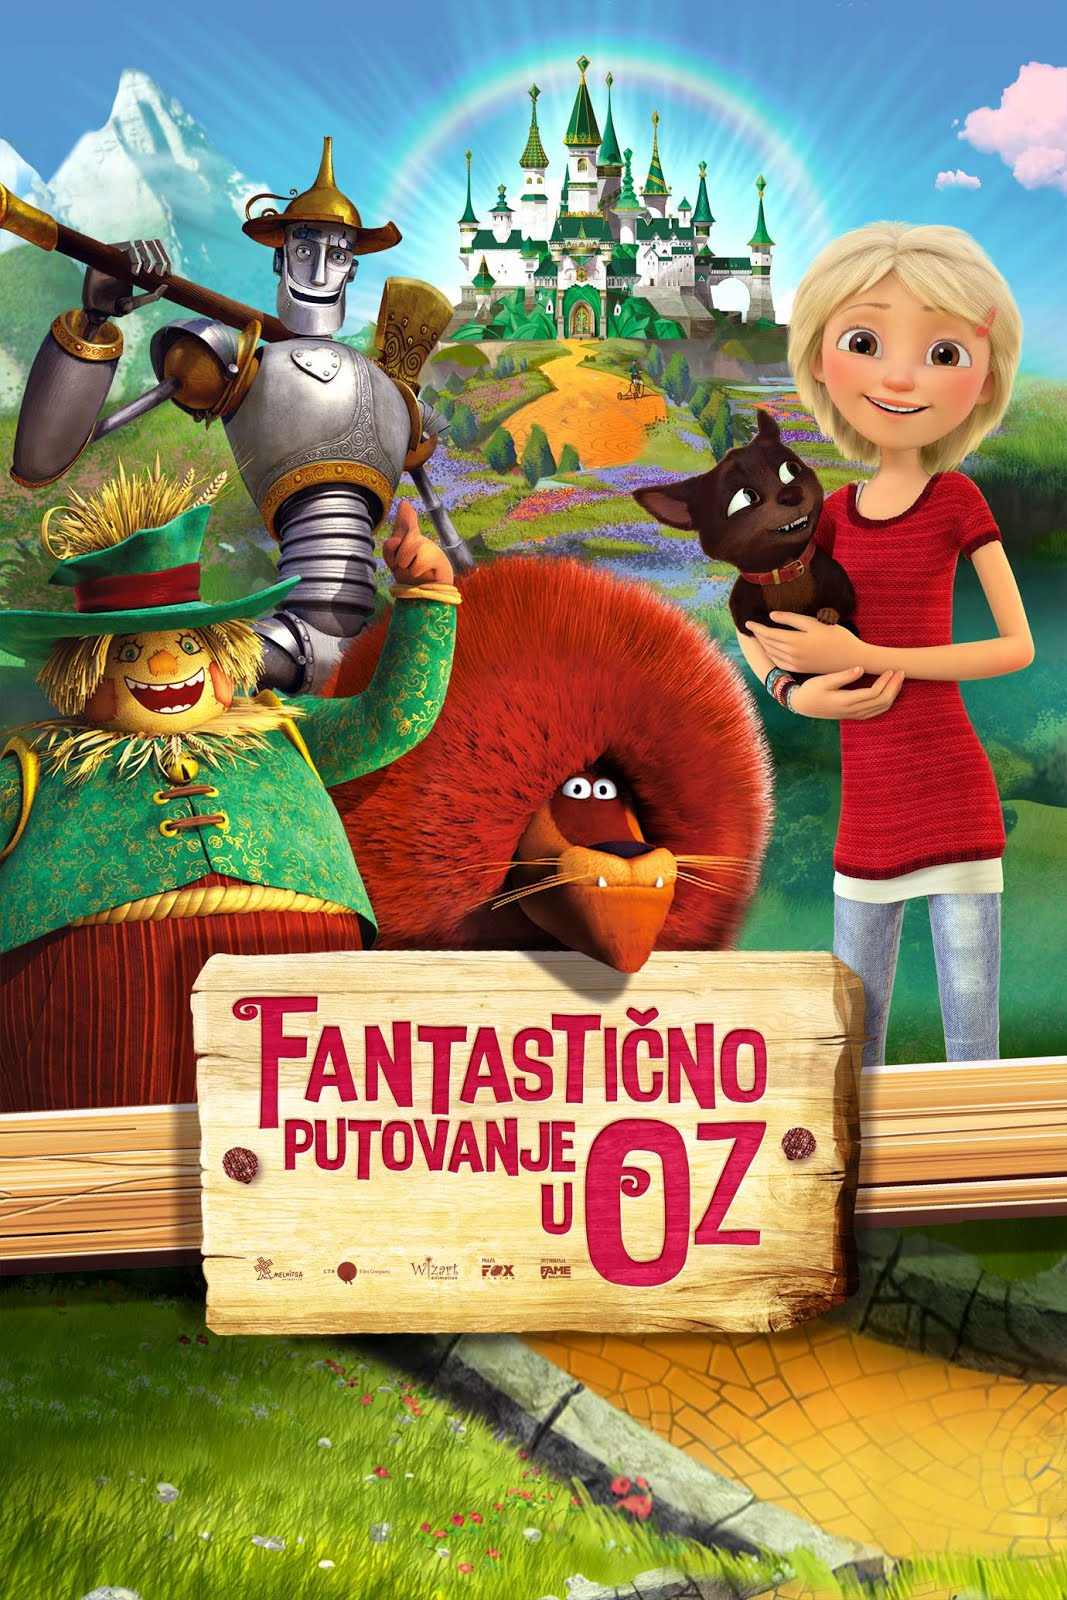 Fantastic Return To Oz (2019) English 250MB WEBRip 480p